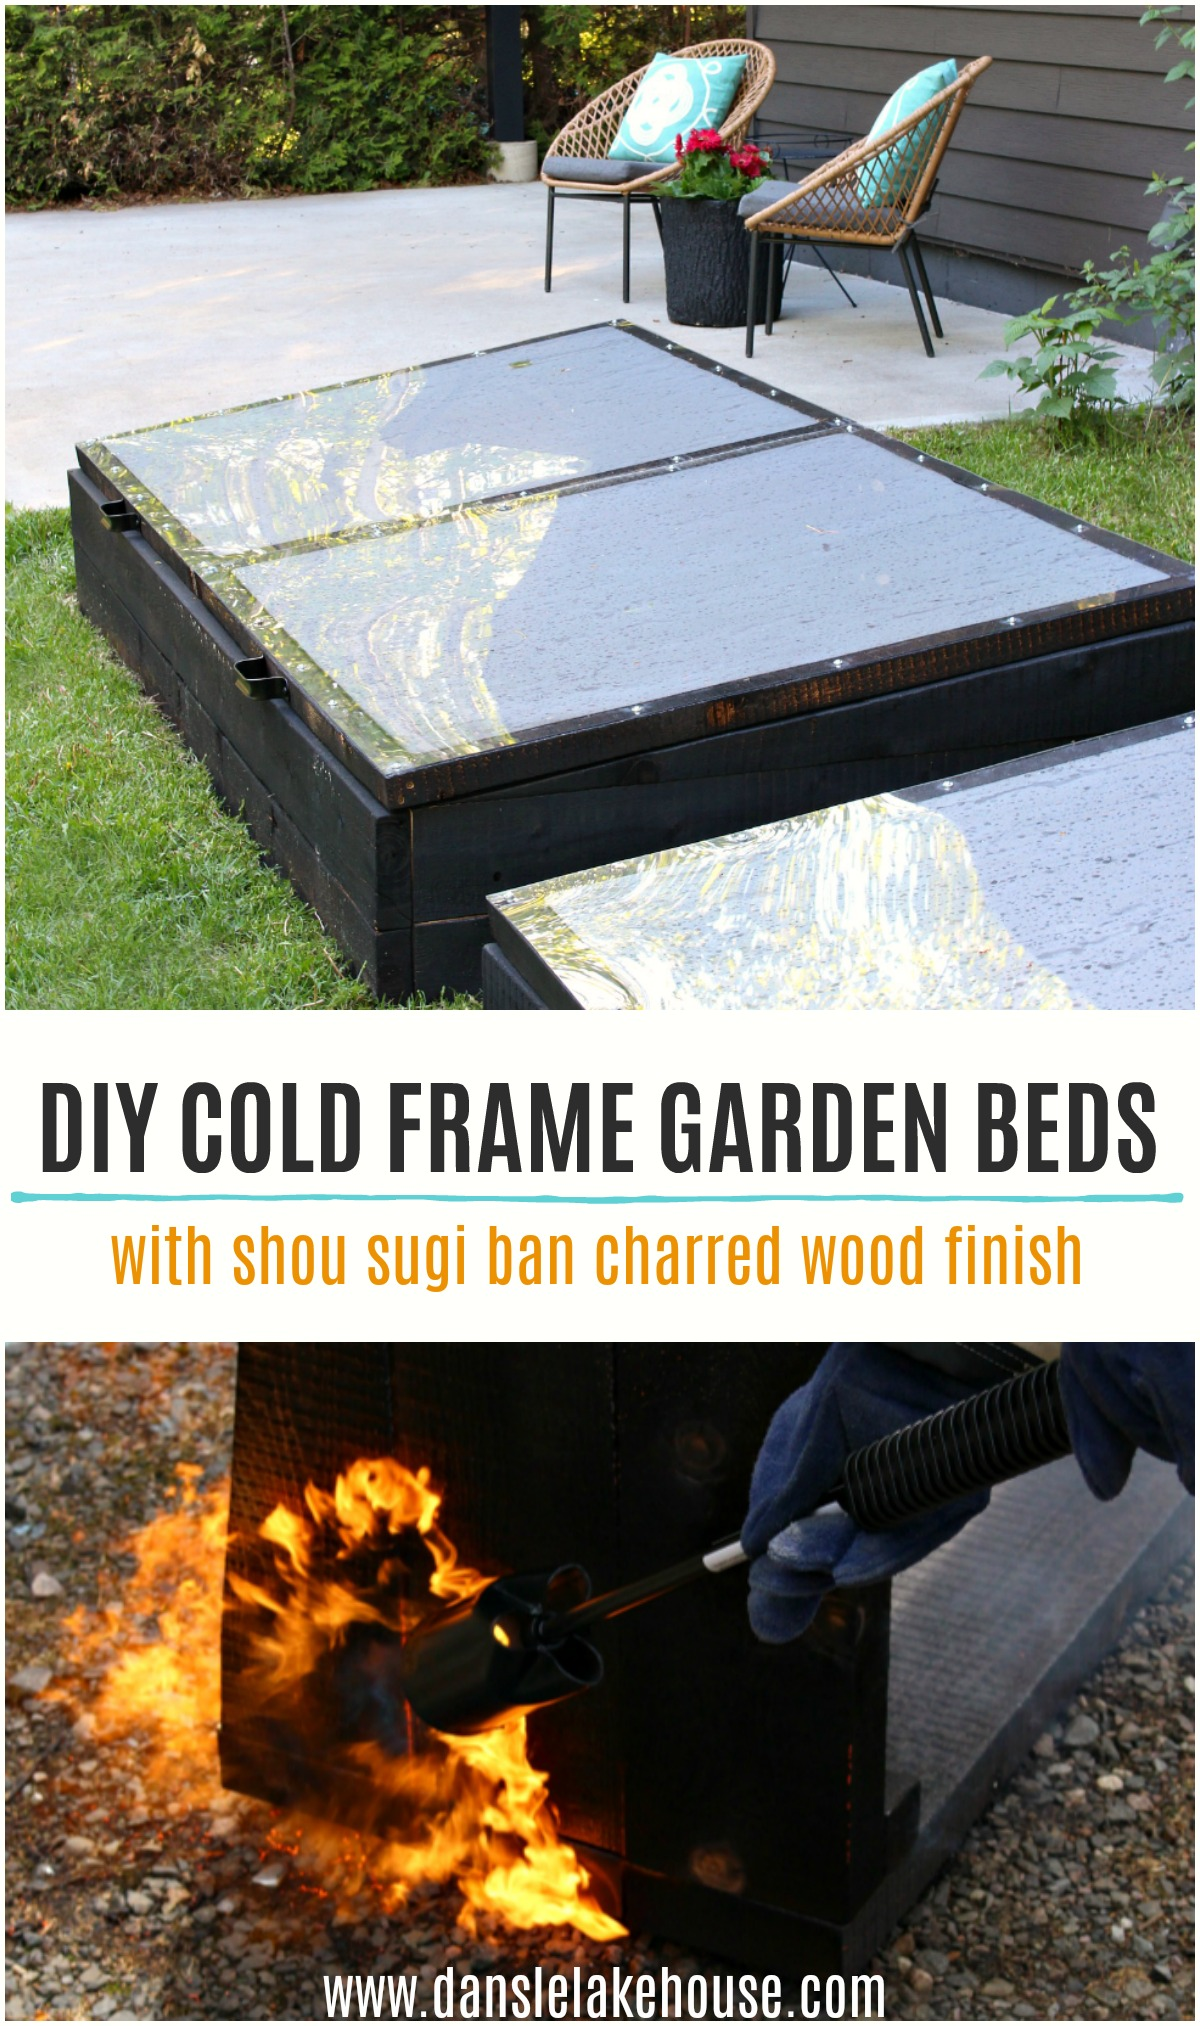 DIY Cold Frame Garden Beds with Shou Sugi Ban Charred Wood Finish